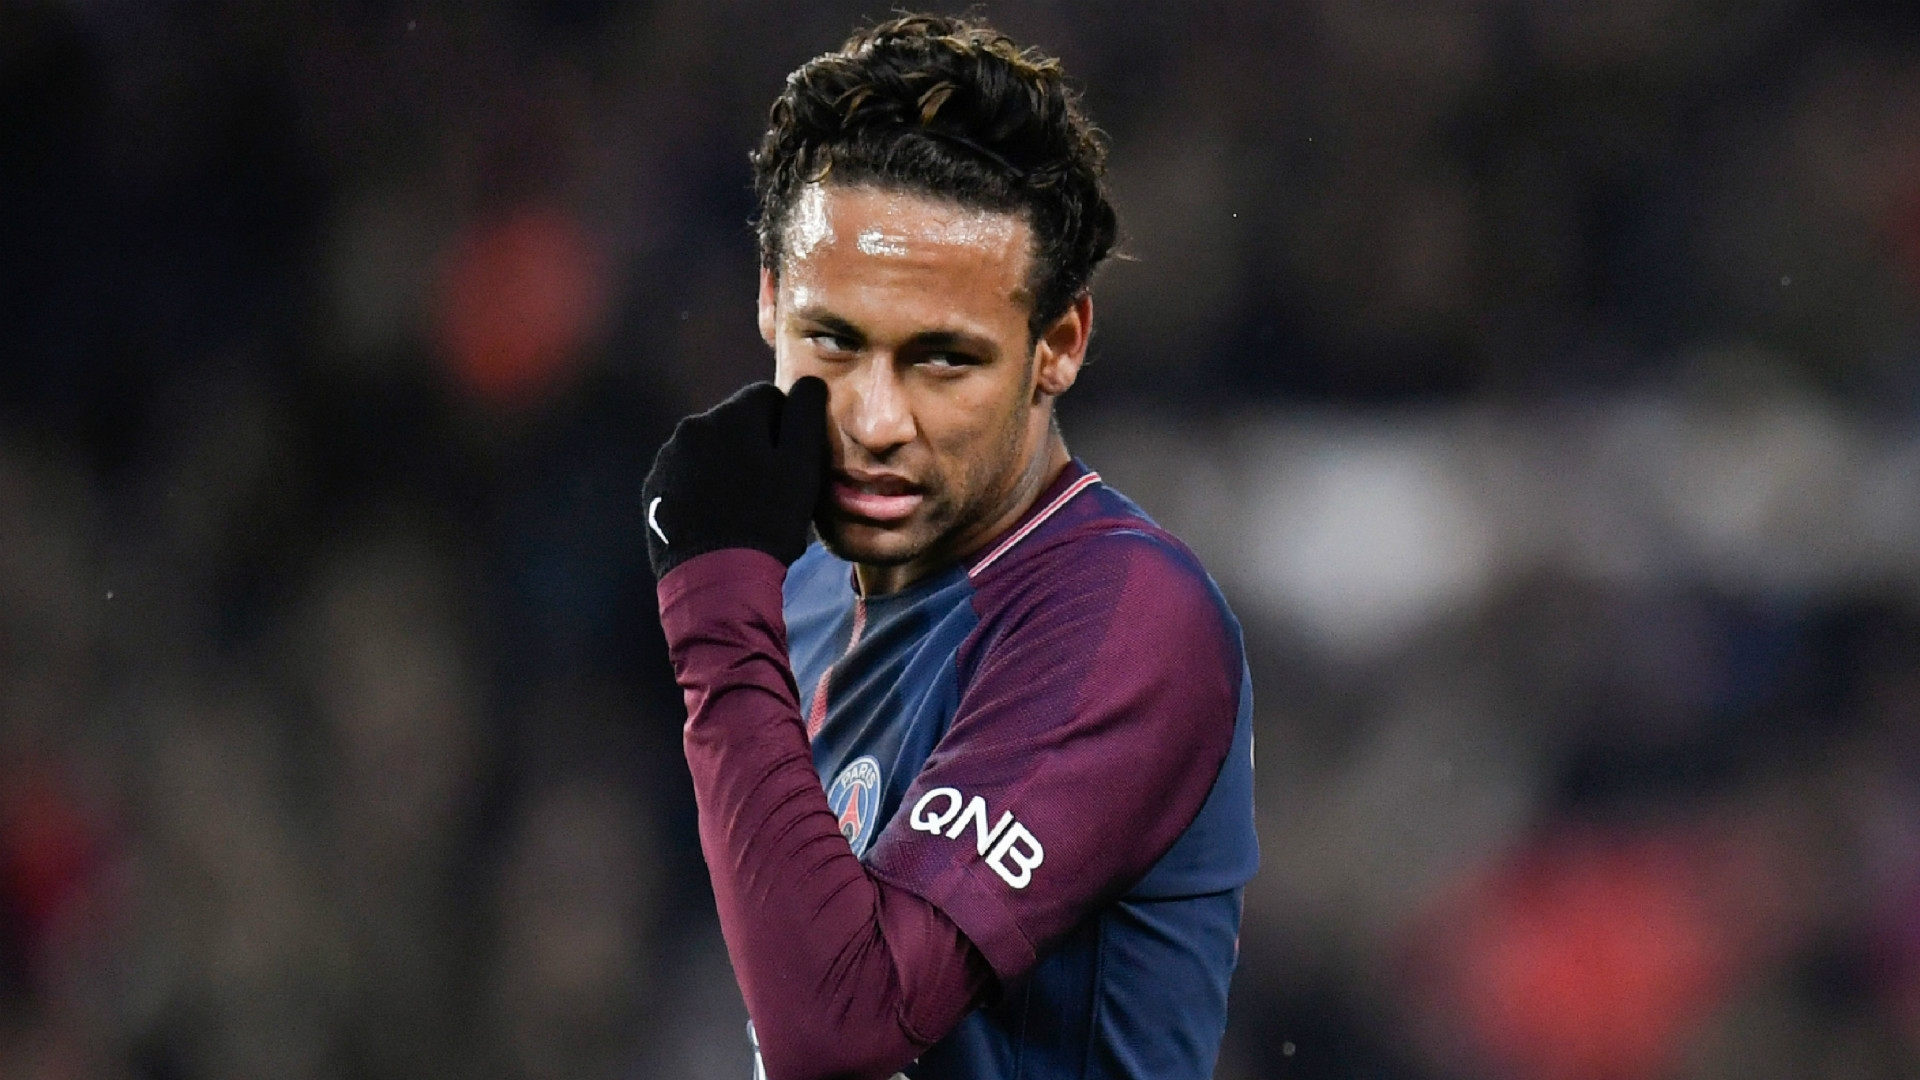 Coiffure Neymar 2018 Neymar Involved In Six Goals For Psg But Fans Still Boo